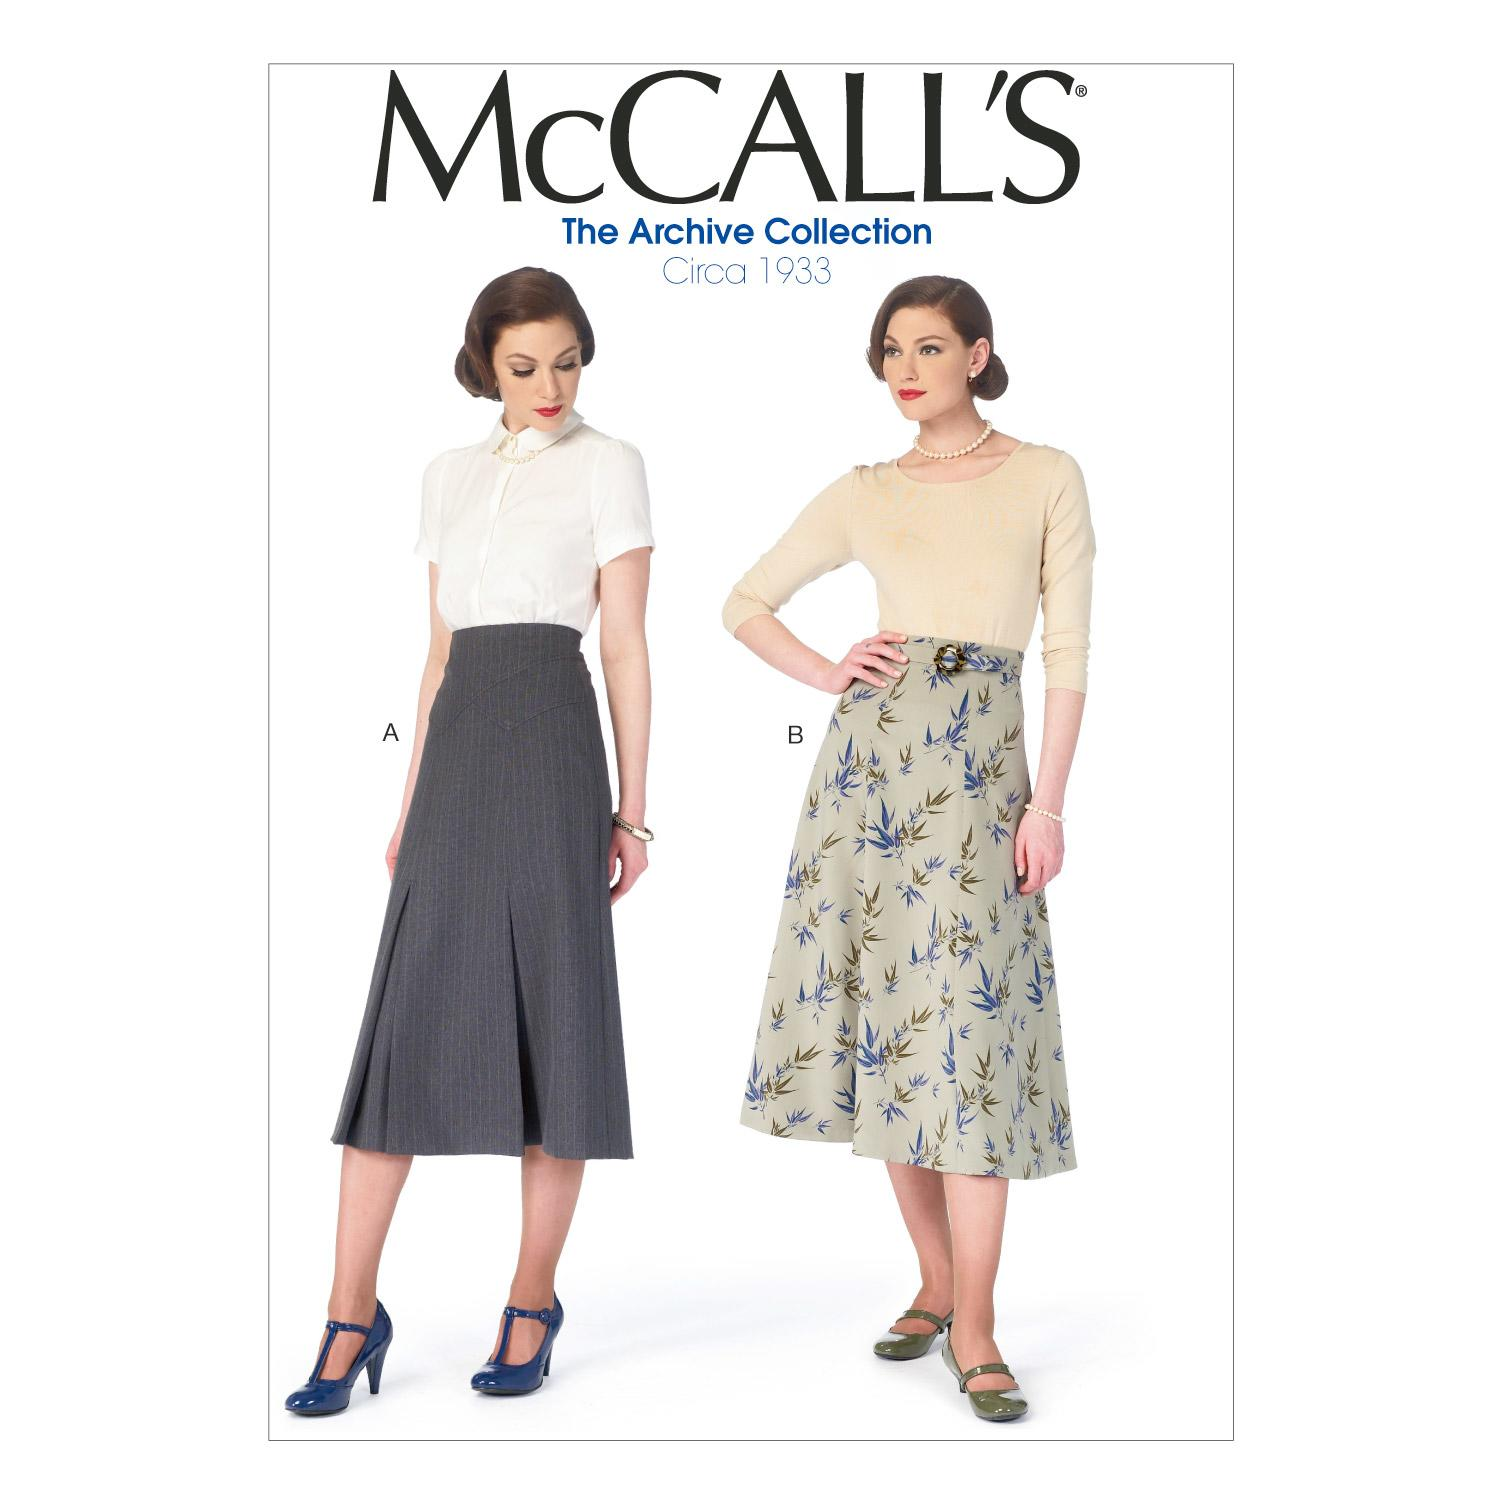 McCalls M6993 Coordinates, Skirts, The Archive Collection